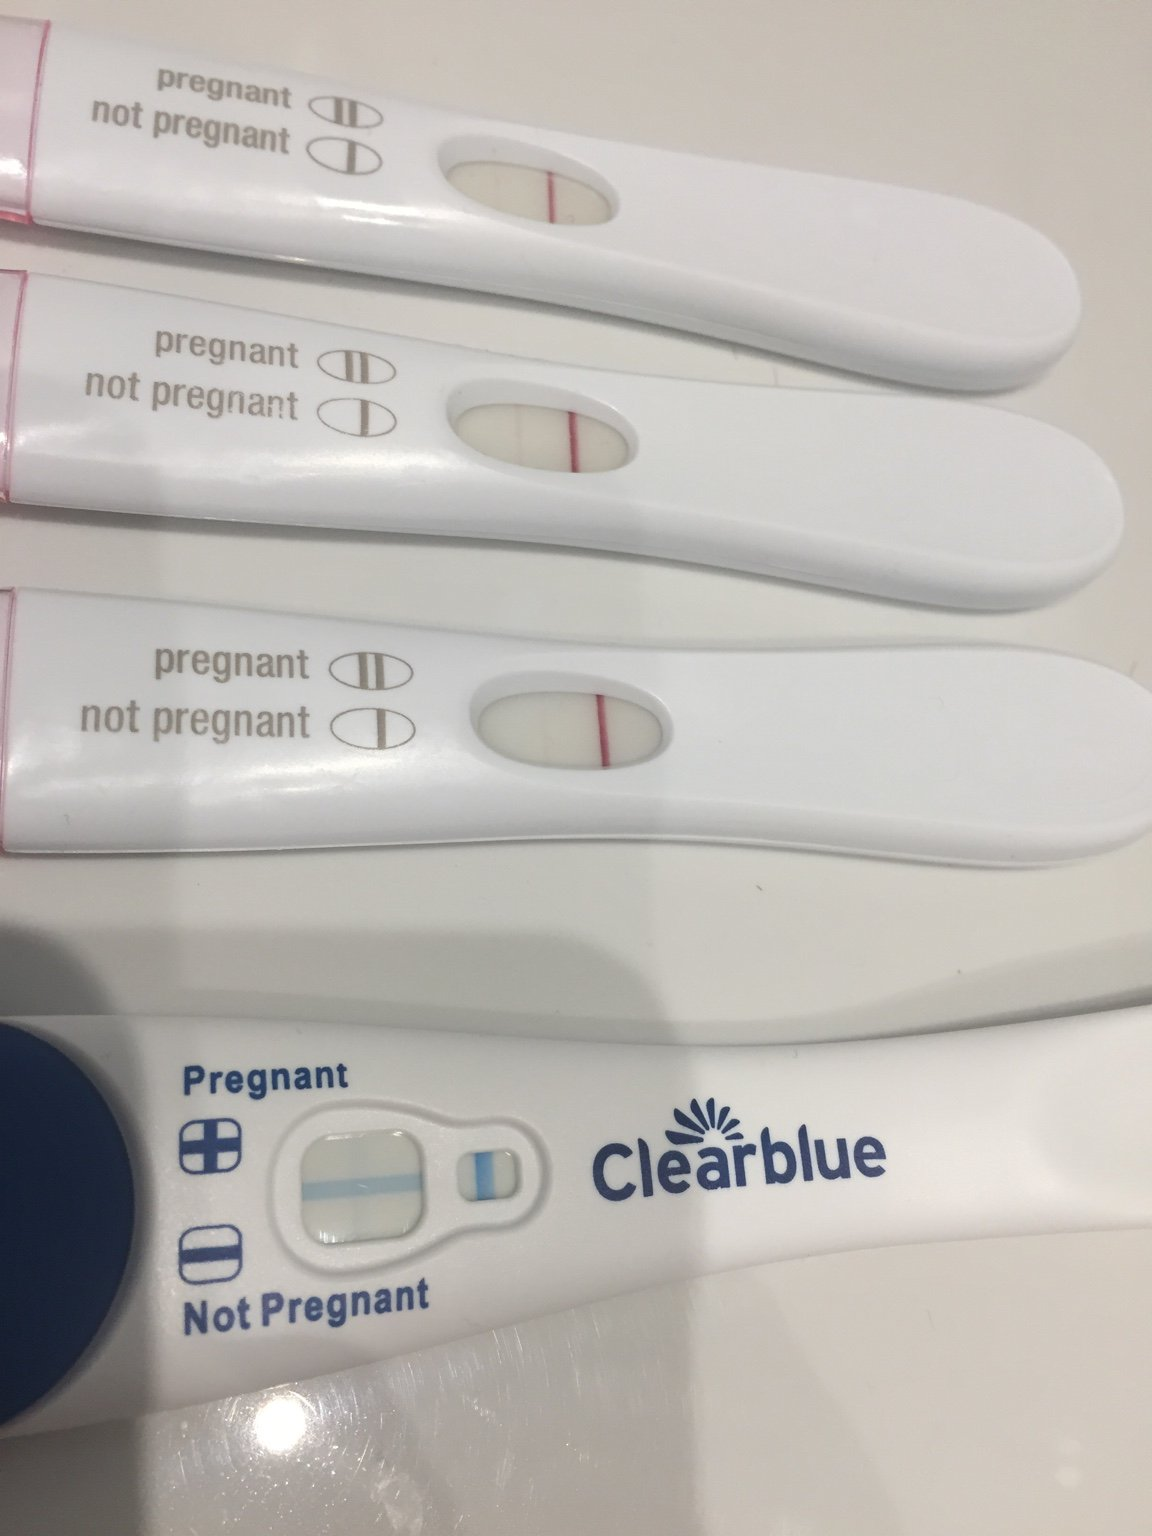 15 dpo are these lines ok? | Netmums